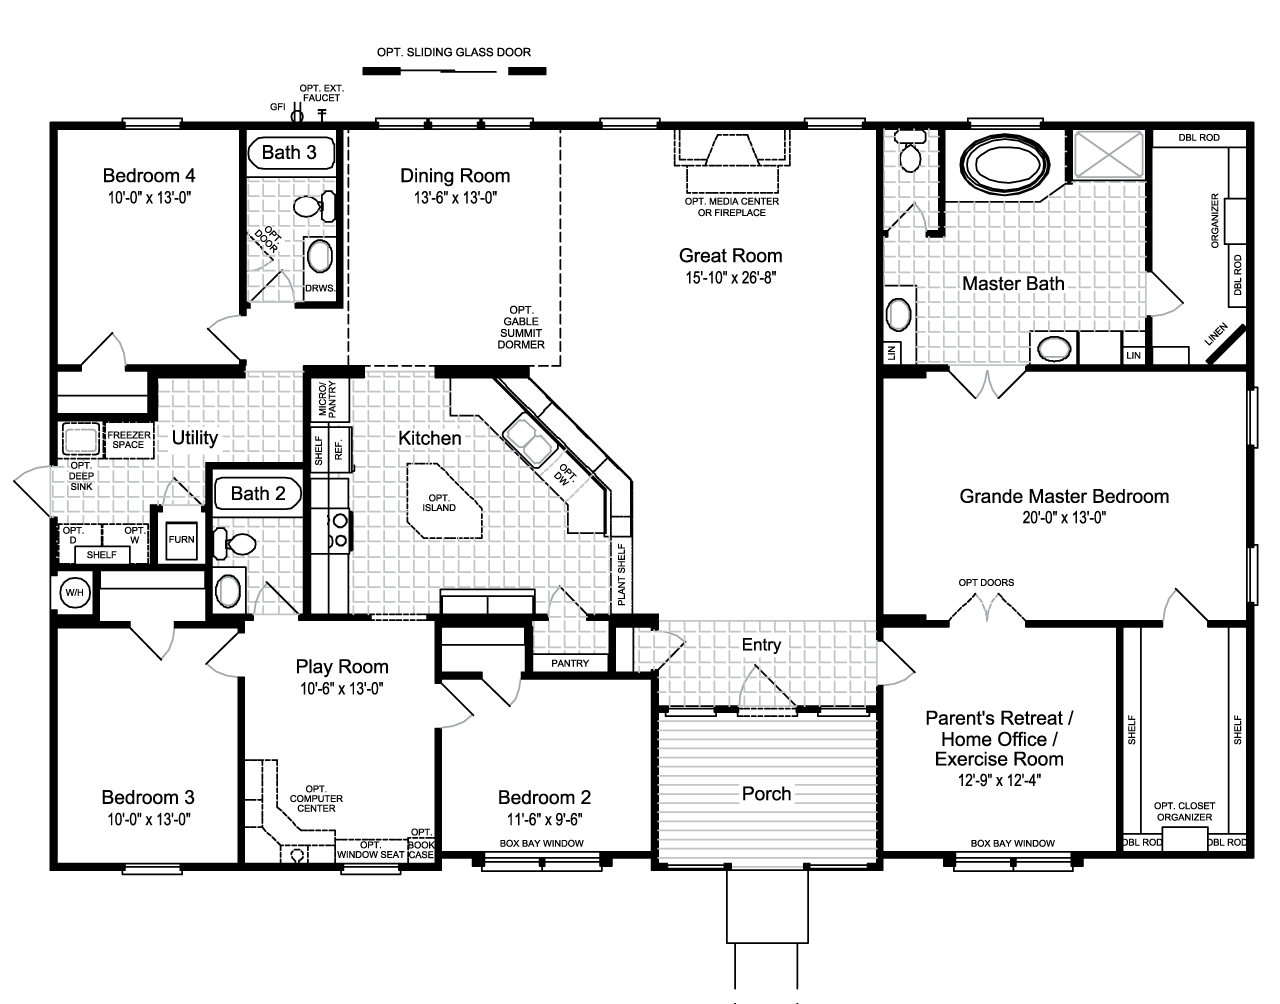 Floor Plan Palm Harbors The Hacienda Ii Vrwd66a3 Or Vr41664a Modular Home Floor Plans Mobile Home Floor Plans Manufactured Homes Floor Plans